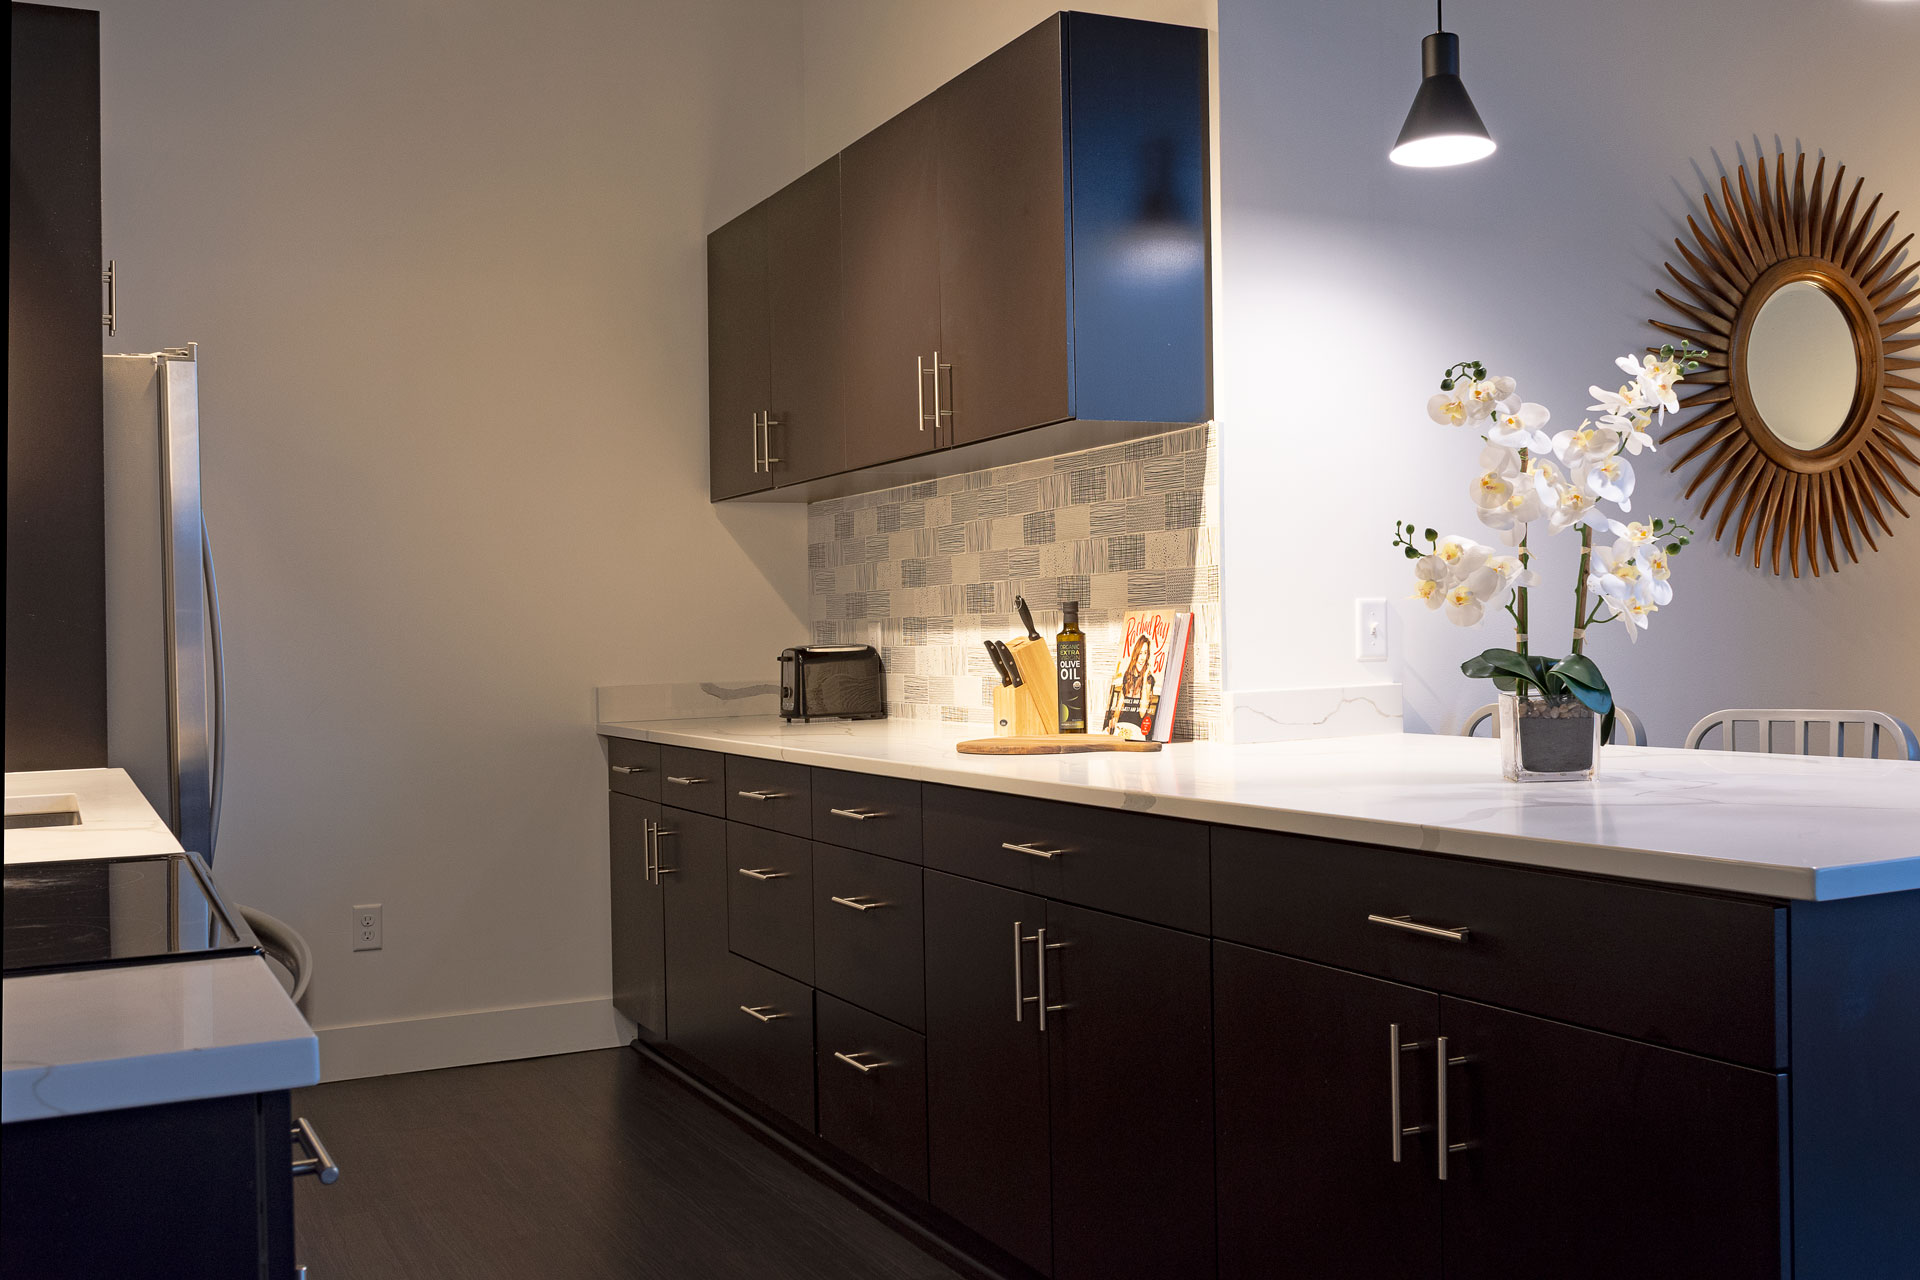 Nice Lighting in Kitchen